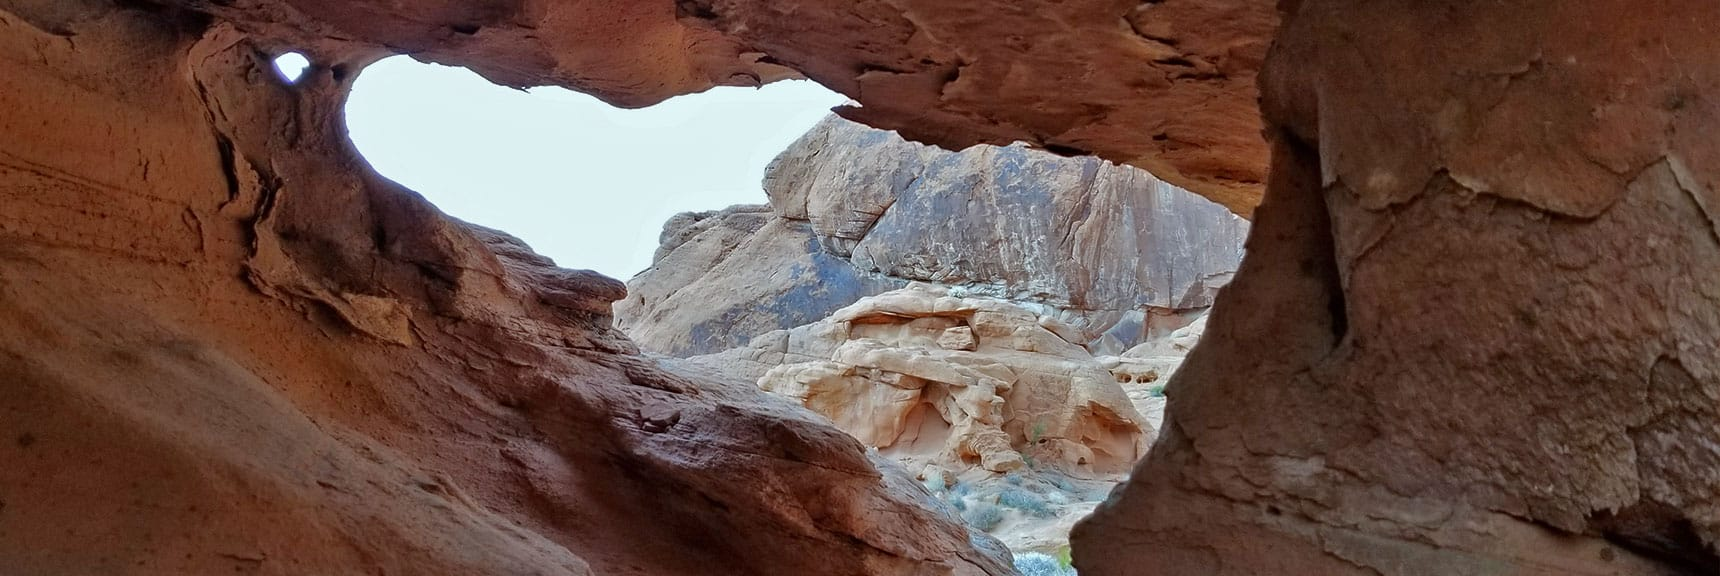 View from Inside the Rock Frames Fire Canyon in Valley of Fire State Park, Nevada